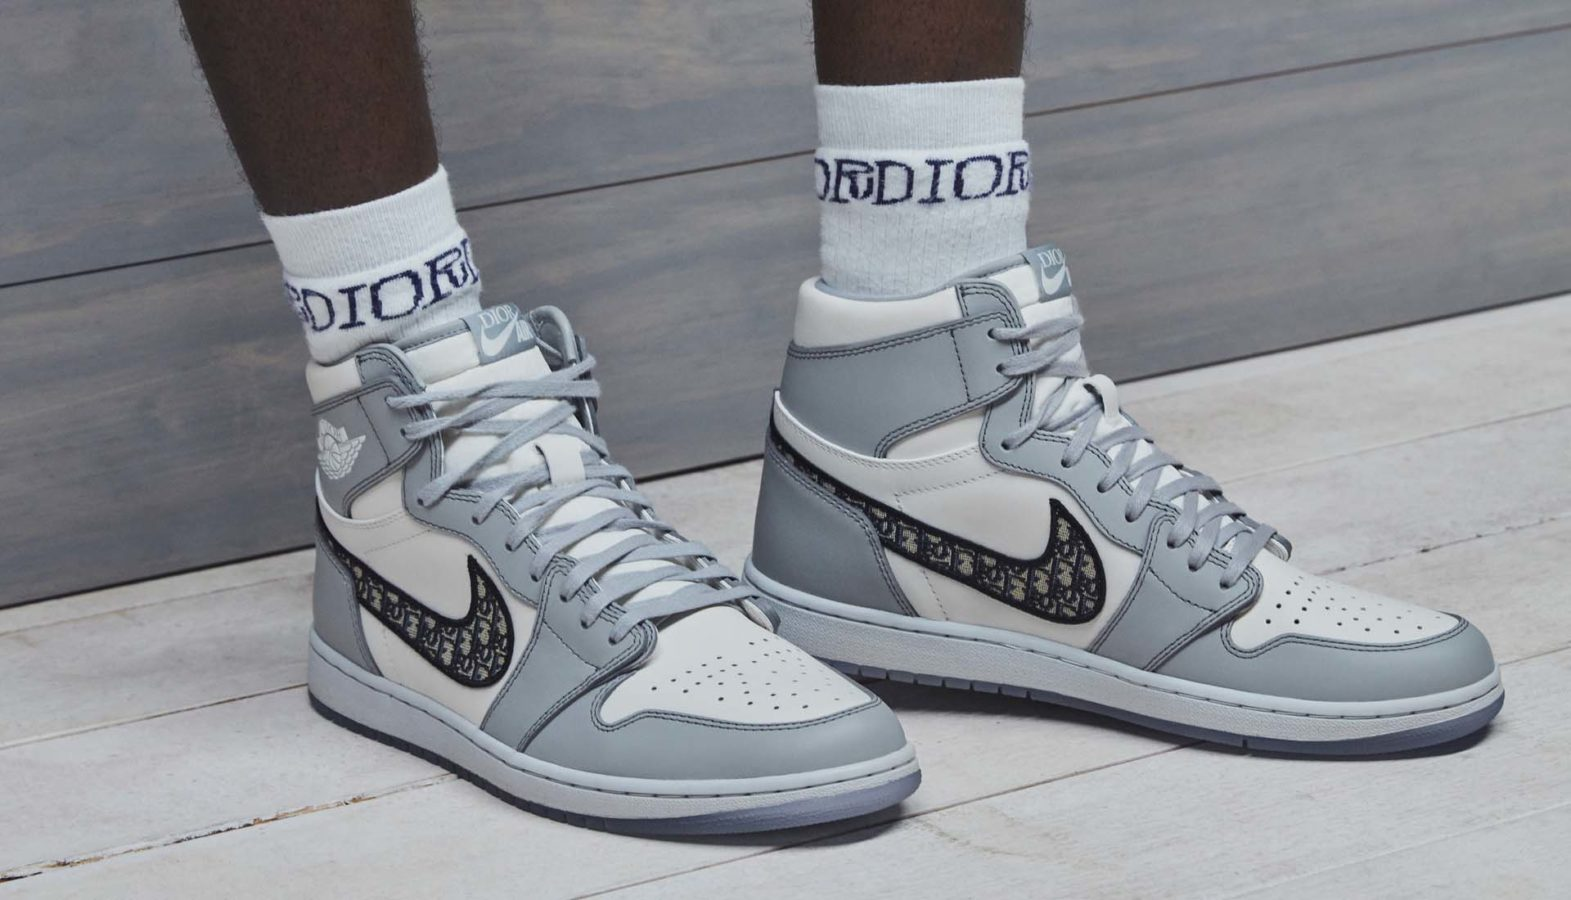 Sneaker central: June's hottest drops, Pride Month specials to take note of